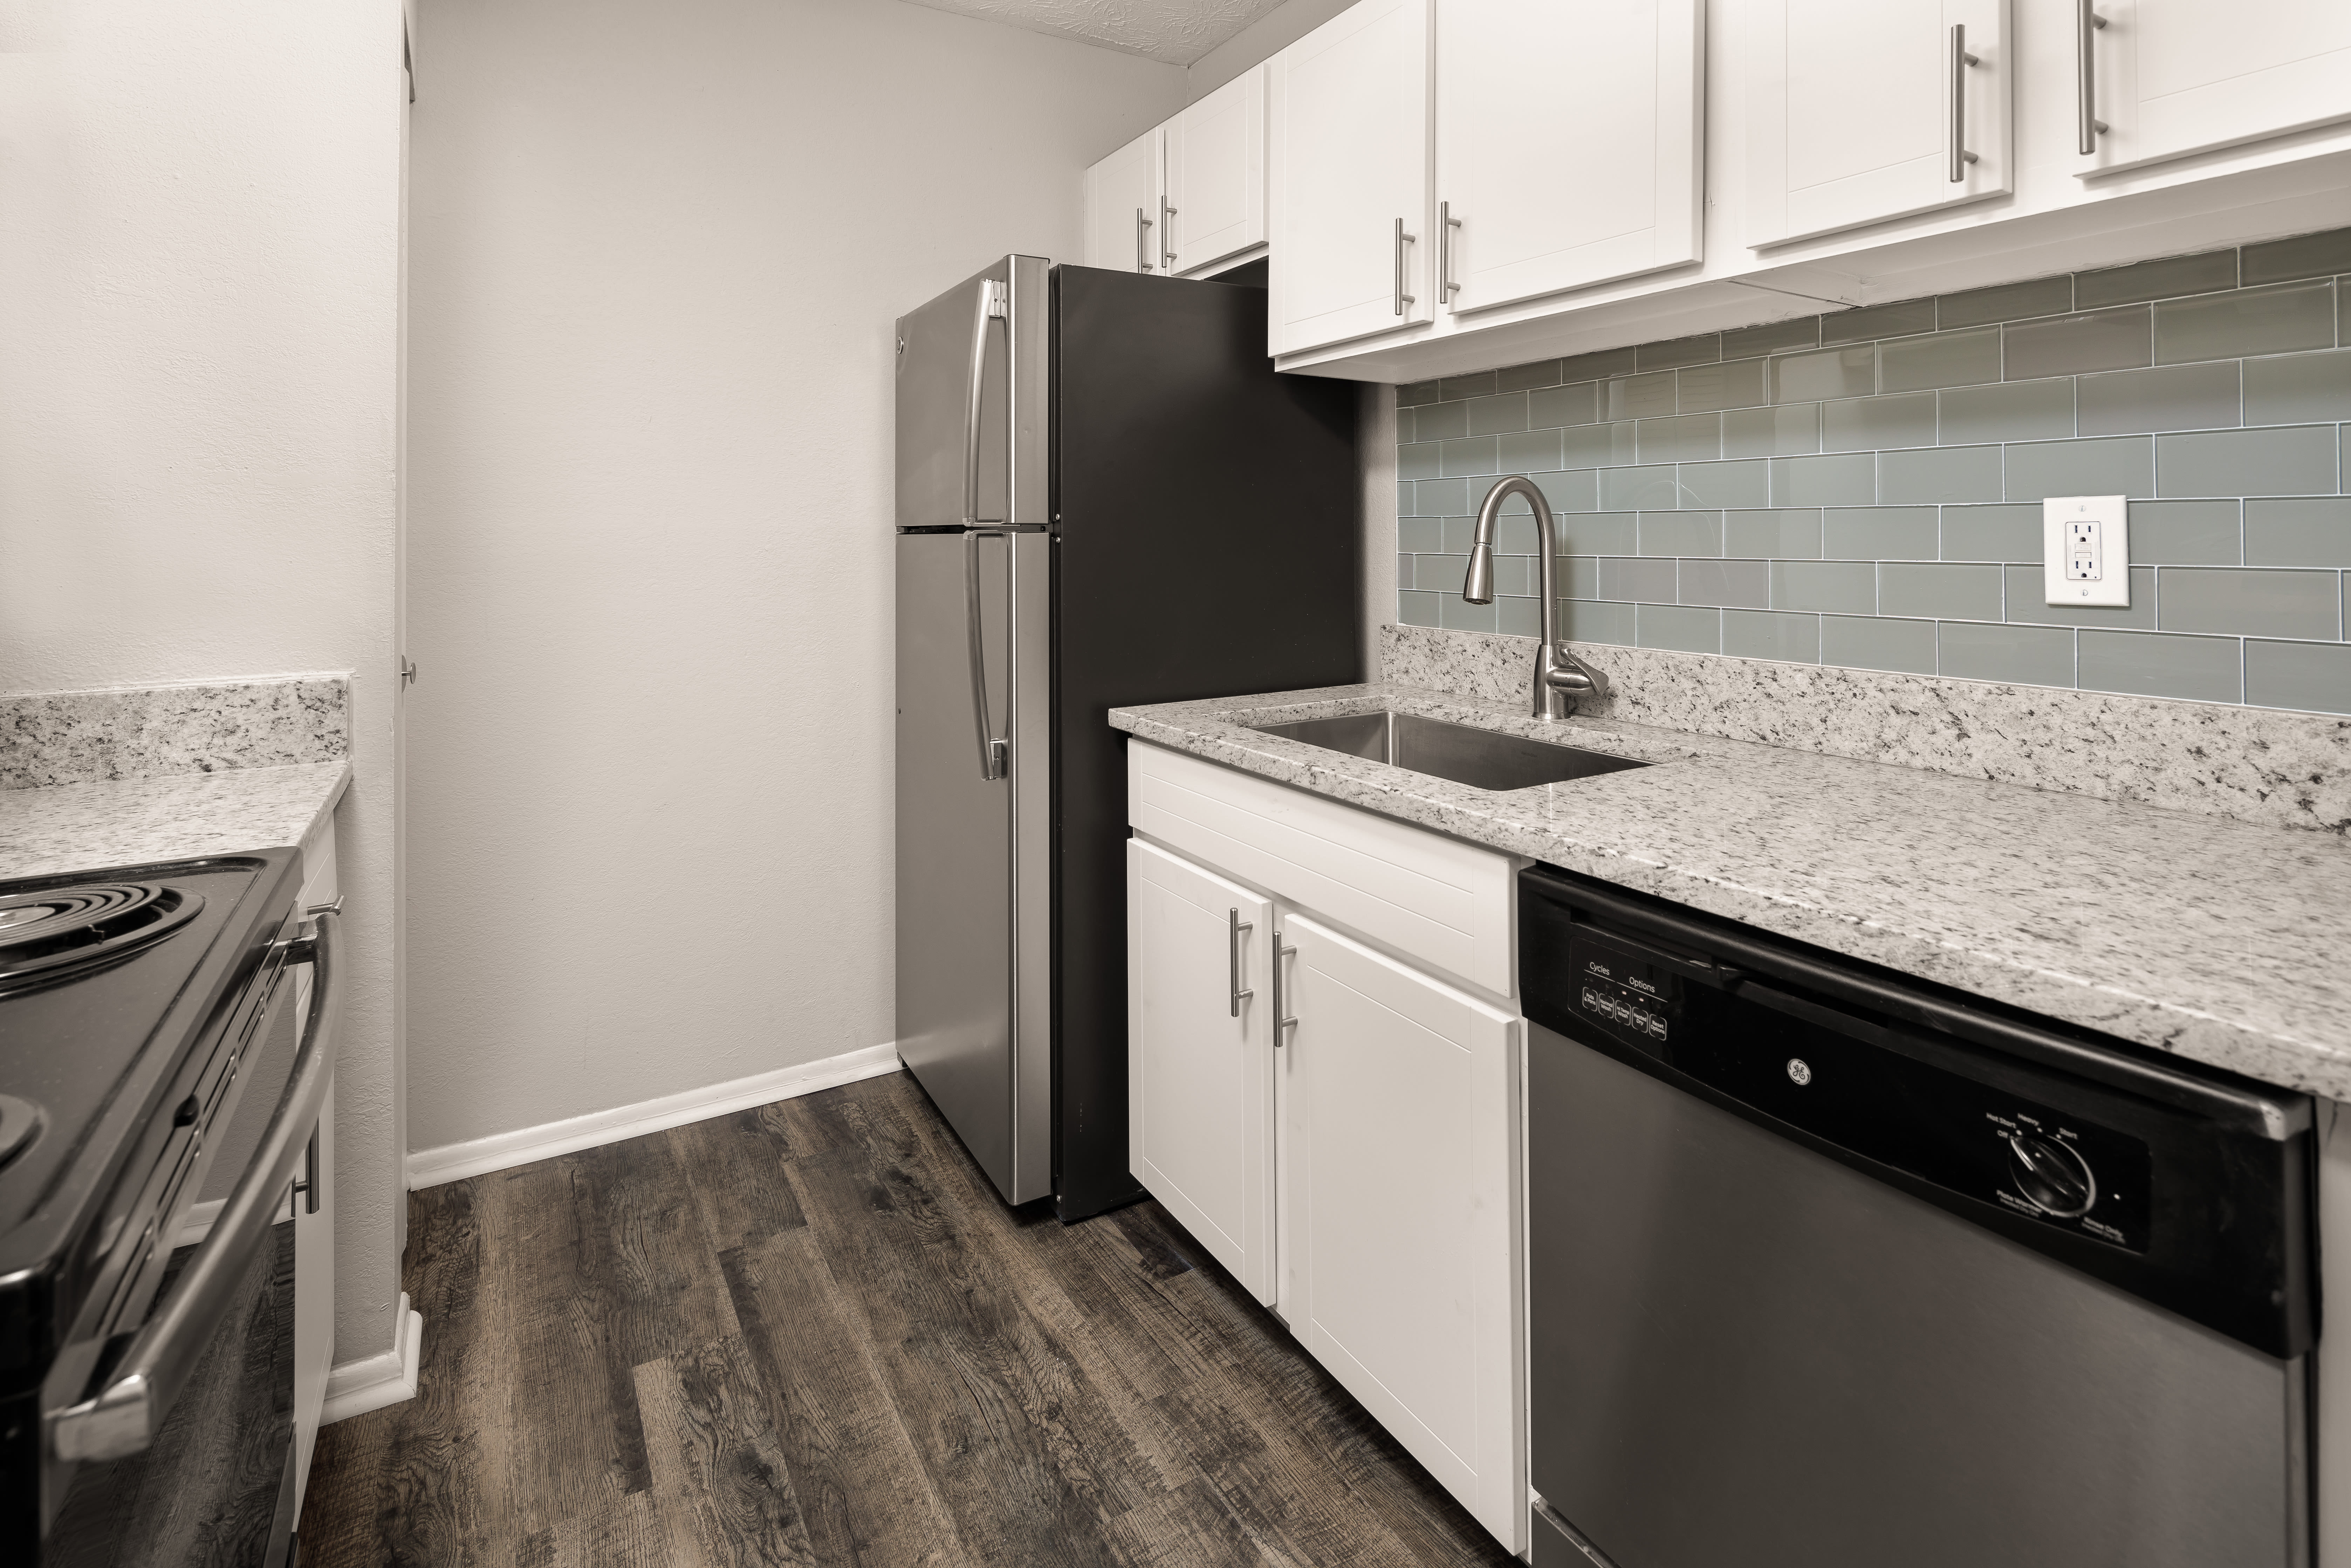 An apartment kitchen with new appliances at The Franklin in Marietta, GA